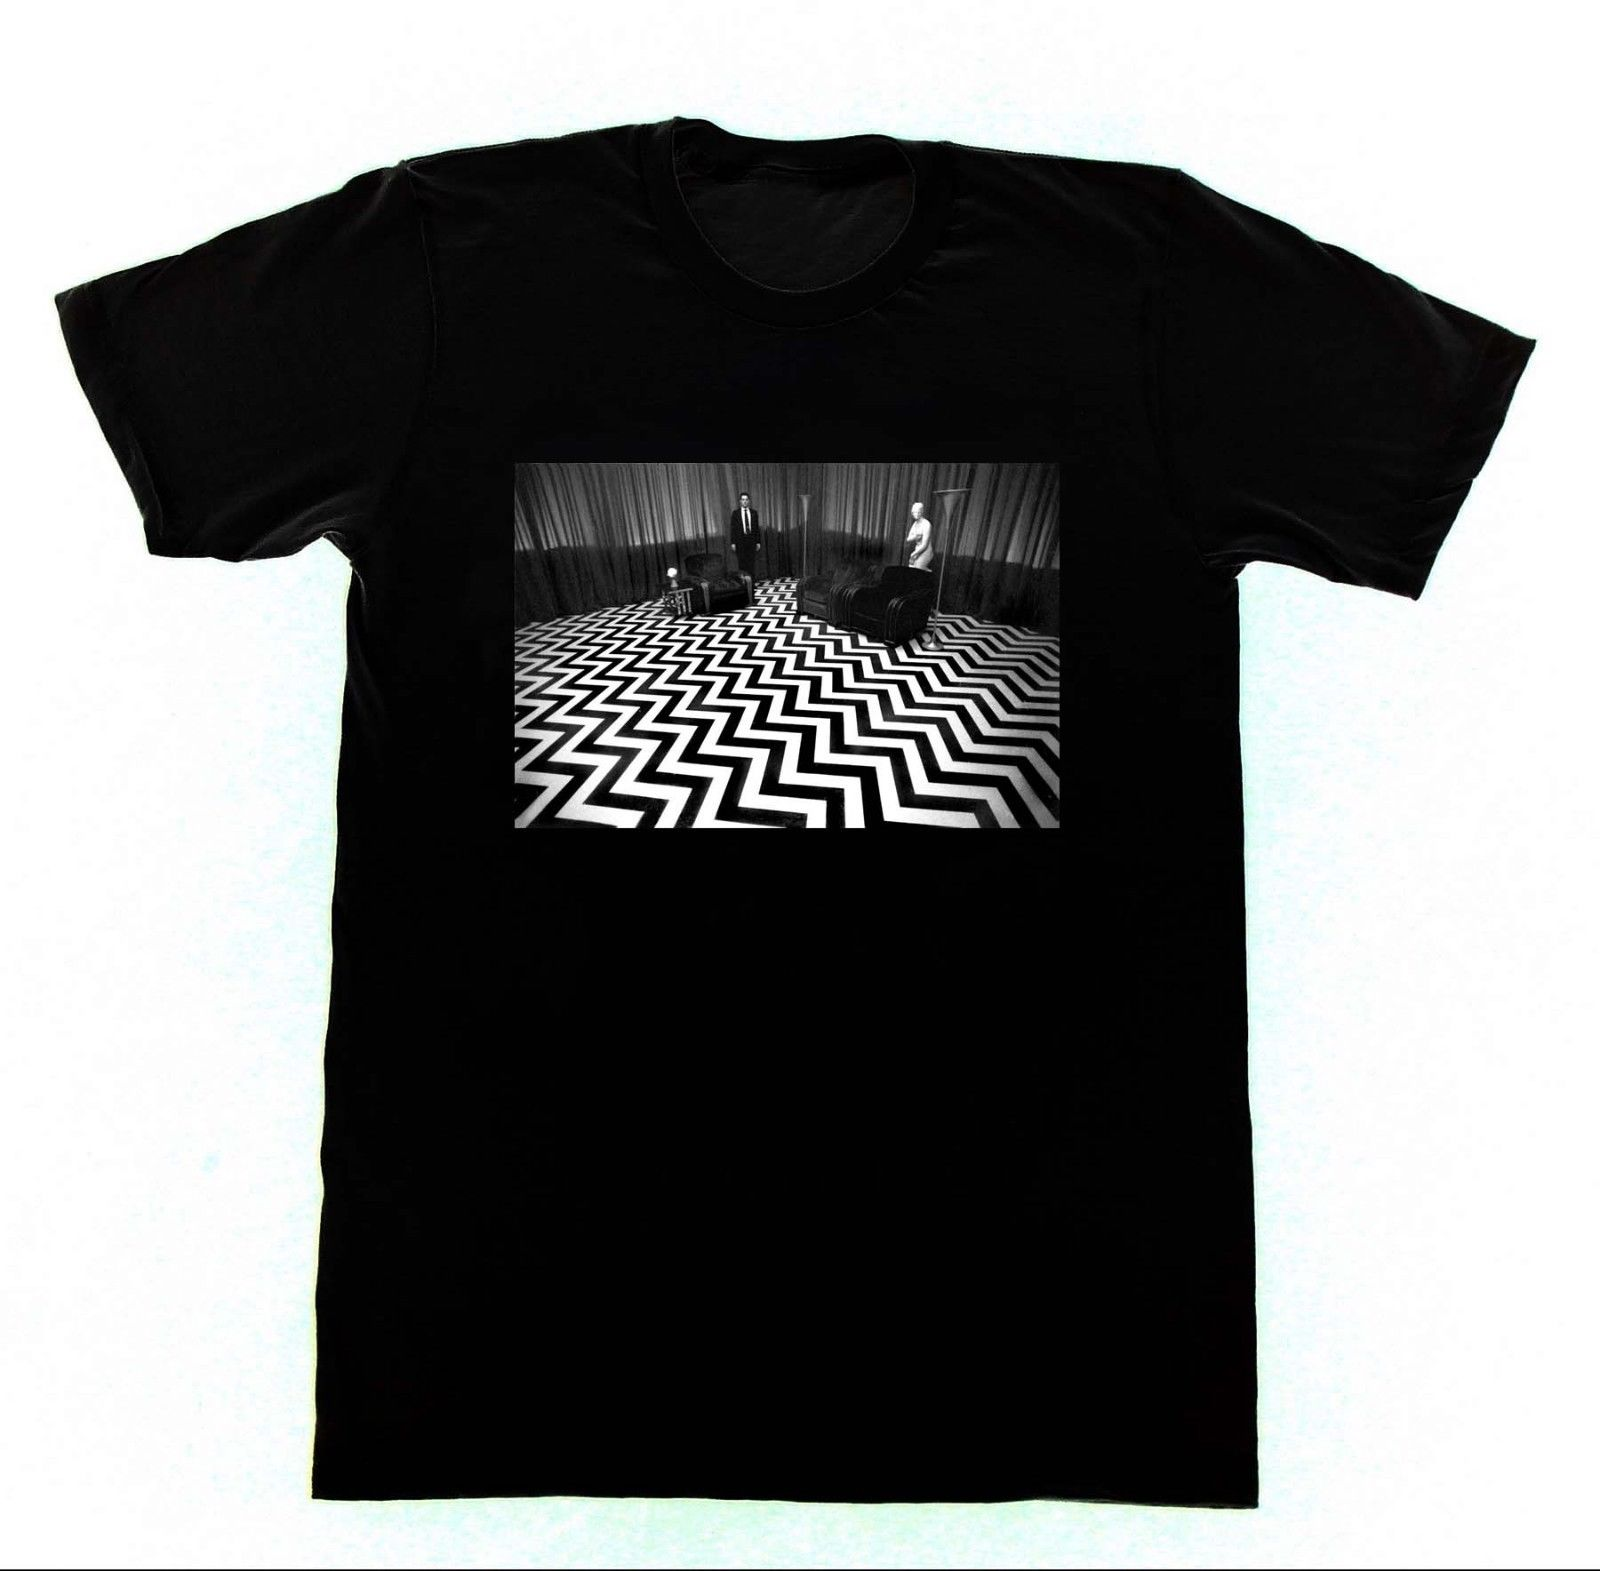 Twin Peaks Room David Lynch Tshirt 121 Shirt Occult Murder Fantsy